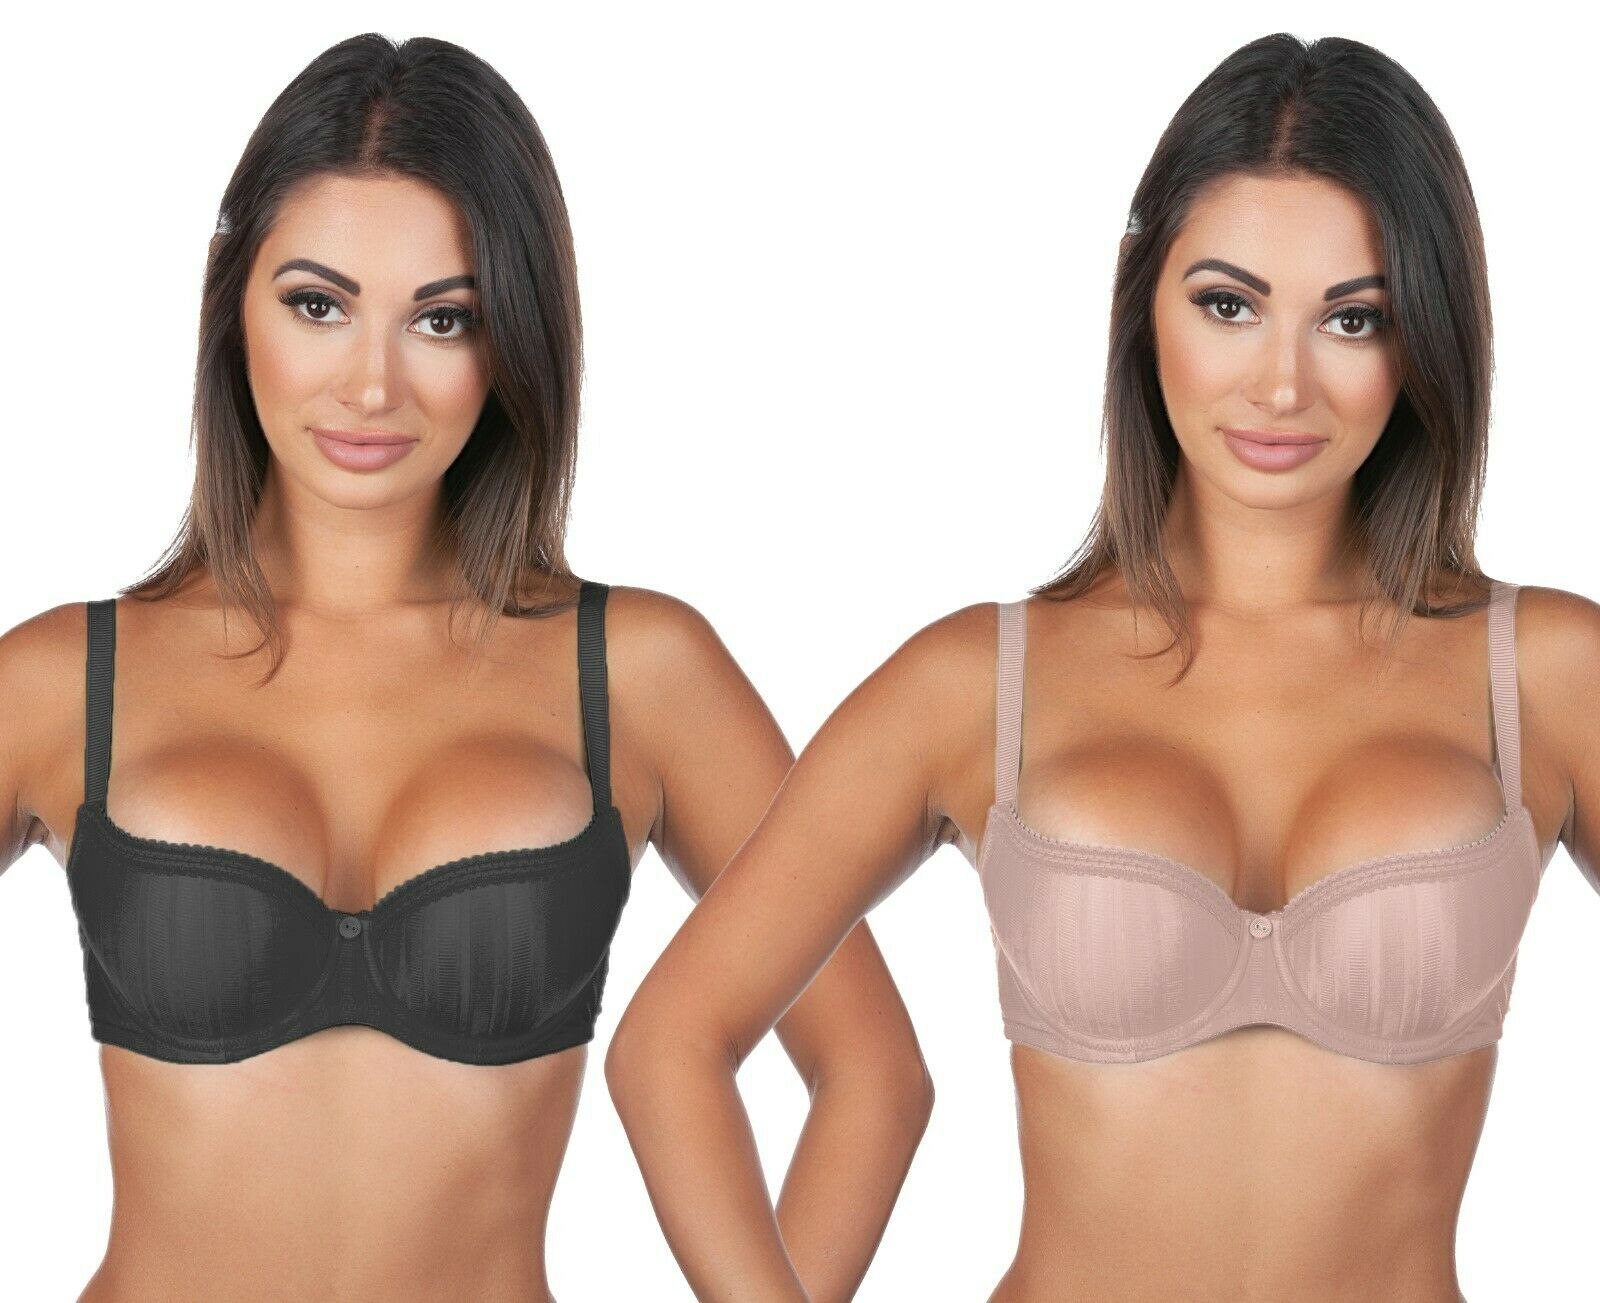 Details about  /Cleo by Panache 7201 Maddie Balconnet T-Shirt Bra Nude  US Size 28K